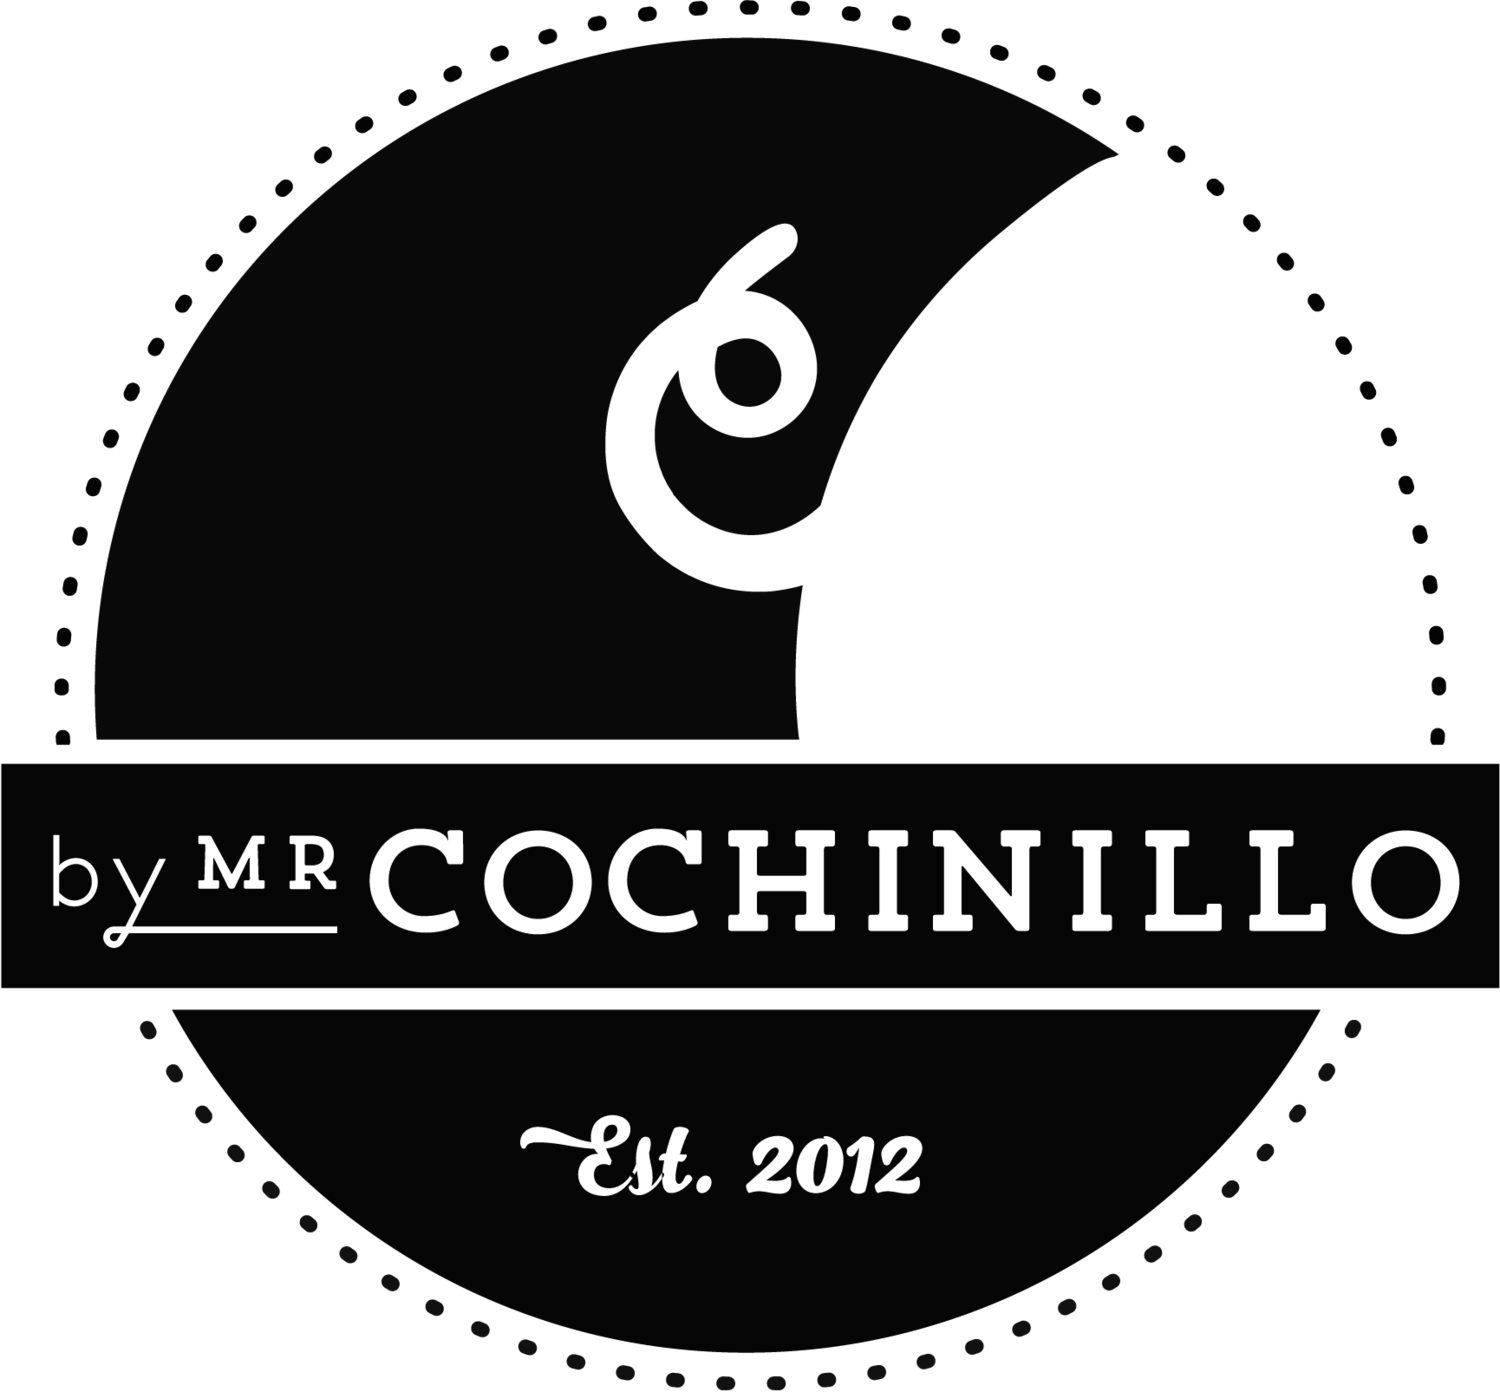 Mr. Cochinillo